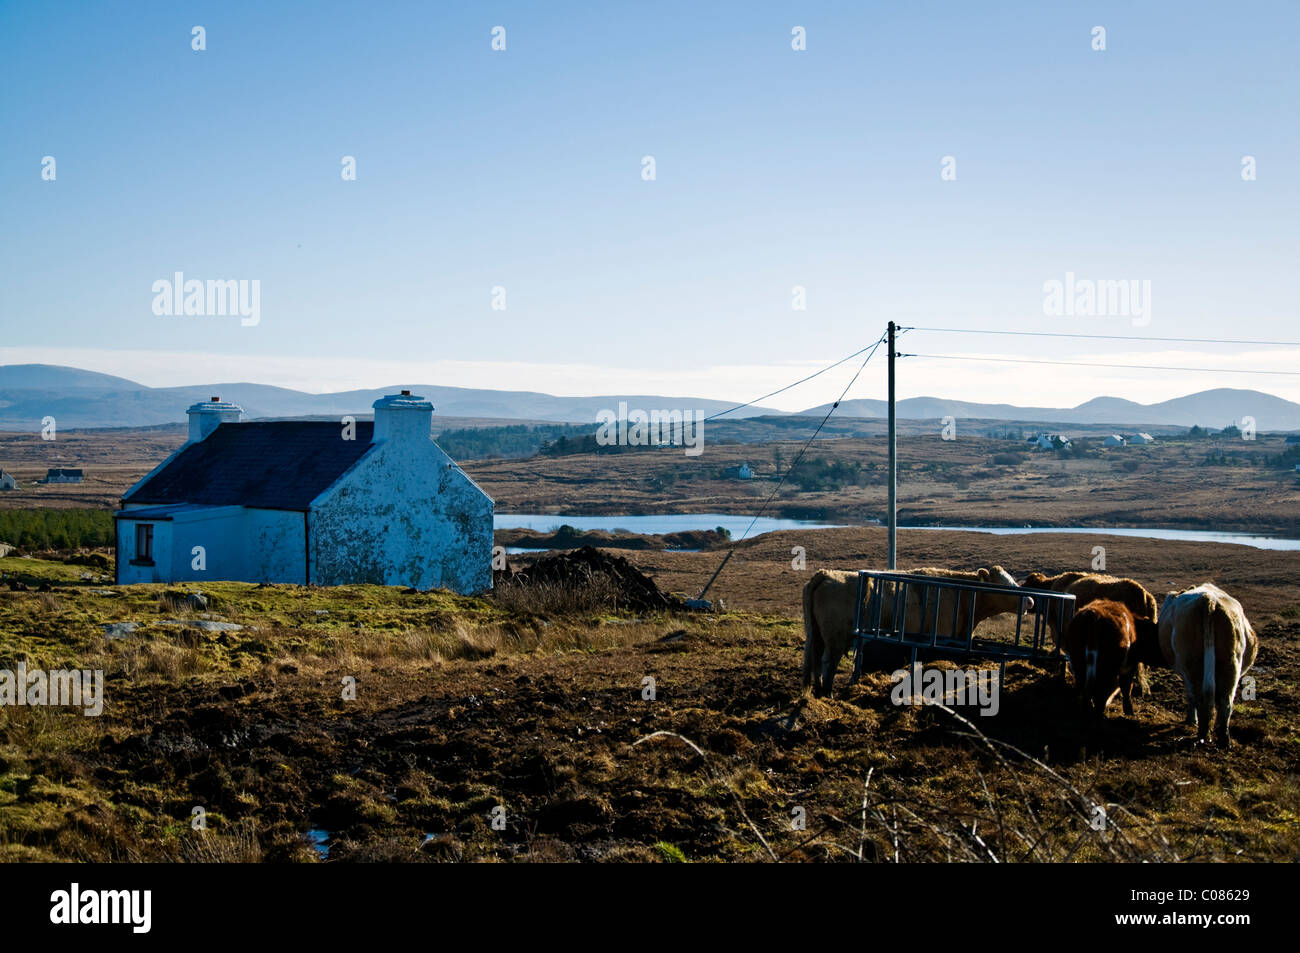 Small farm in rural Ireland - Stock Image